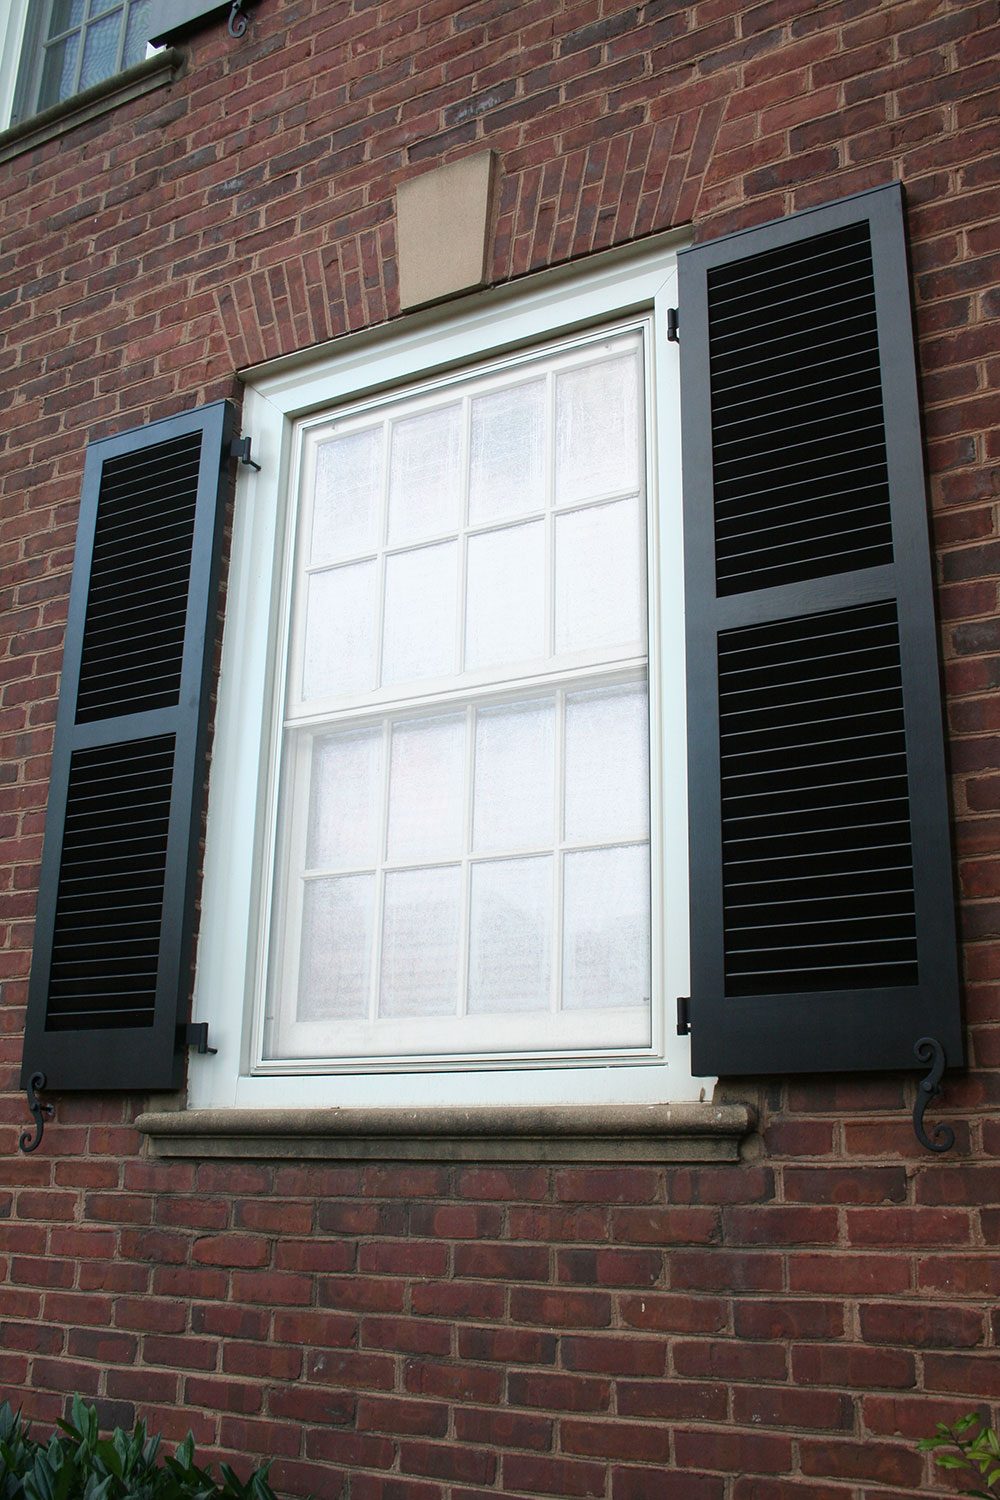 Exterior Shutters: Exterior Shutter PhotosPerfect Fit Shutters